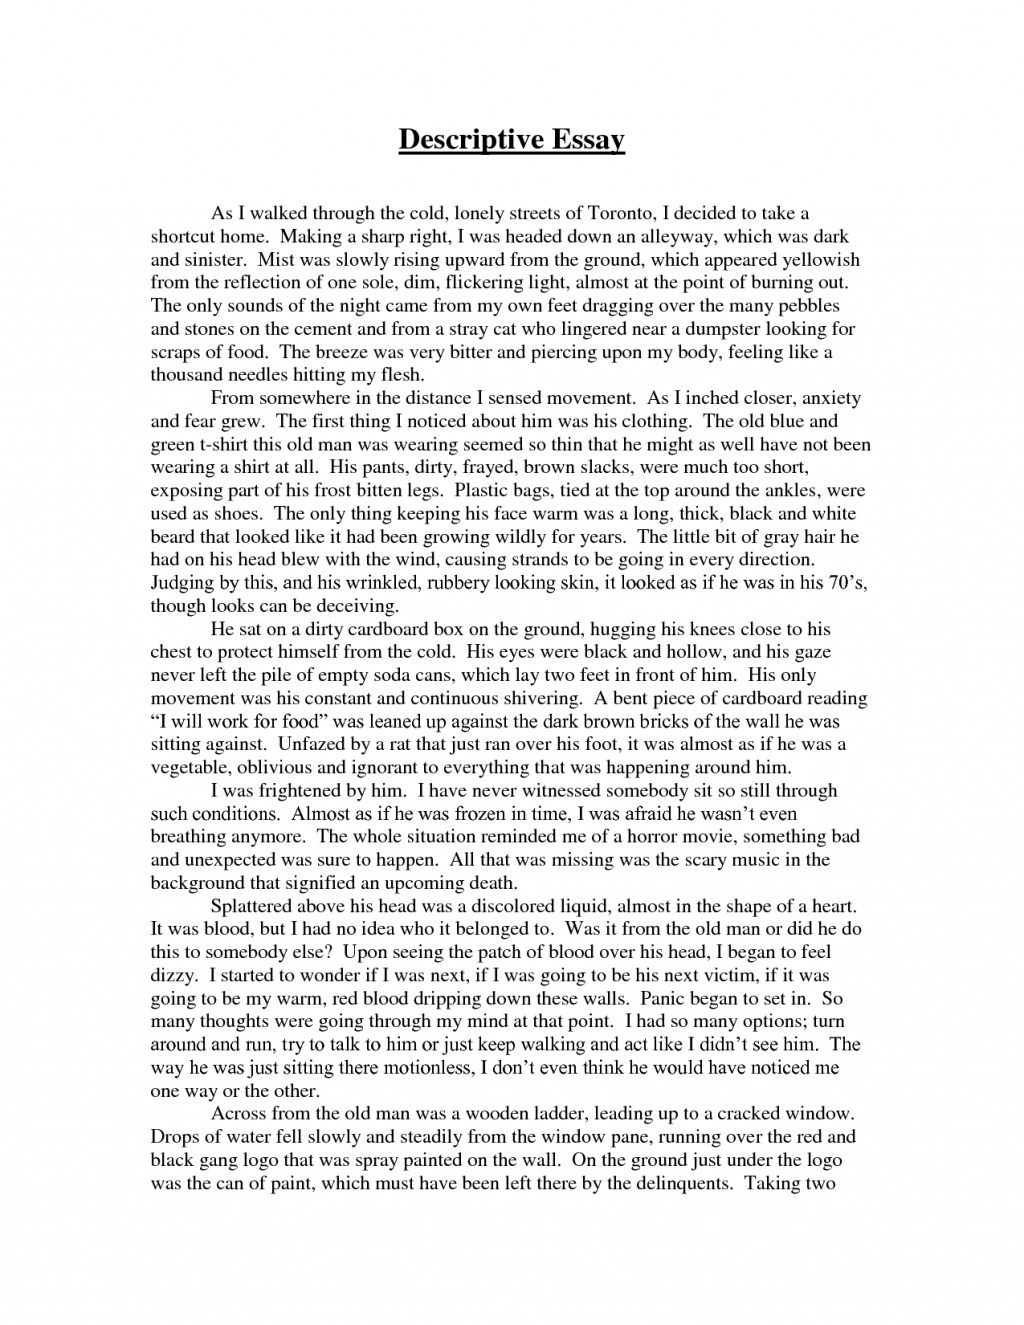 002 Essay Example Discriptive Cover Letter For Descriptive How Write Writing Paragraph About Place To Of In Philippines Breathtaking Ideas Ks3 Activities High School Ks2 Large